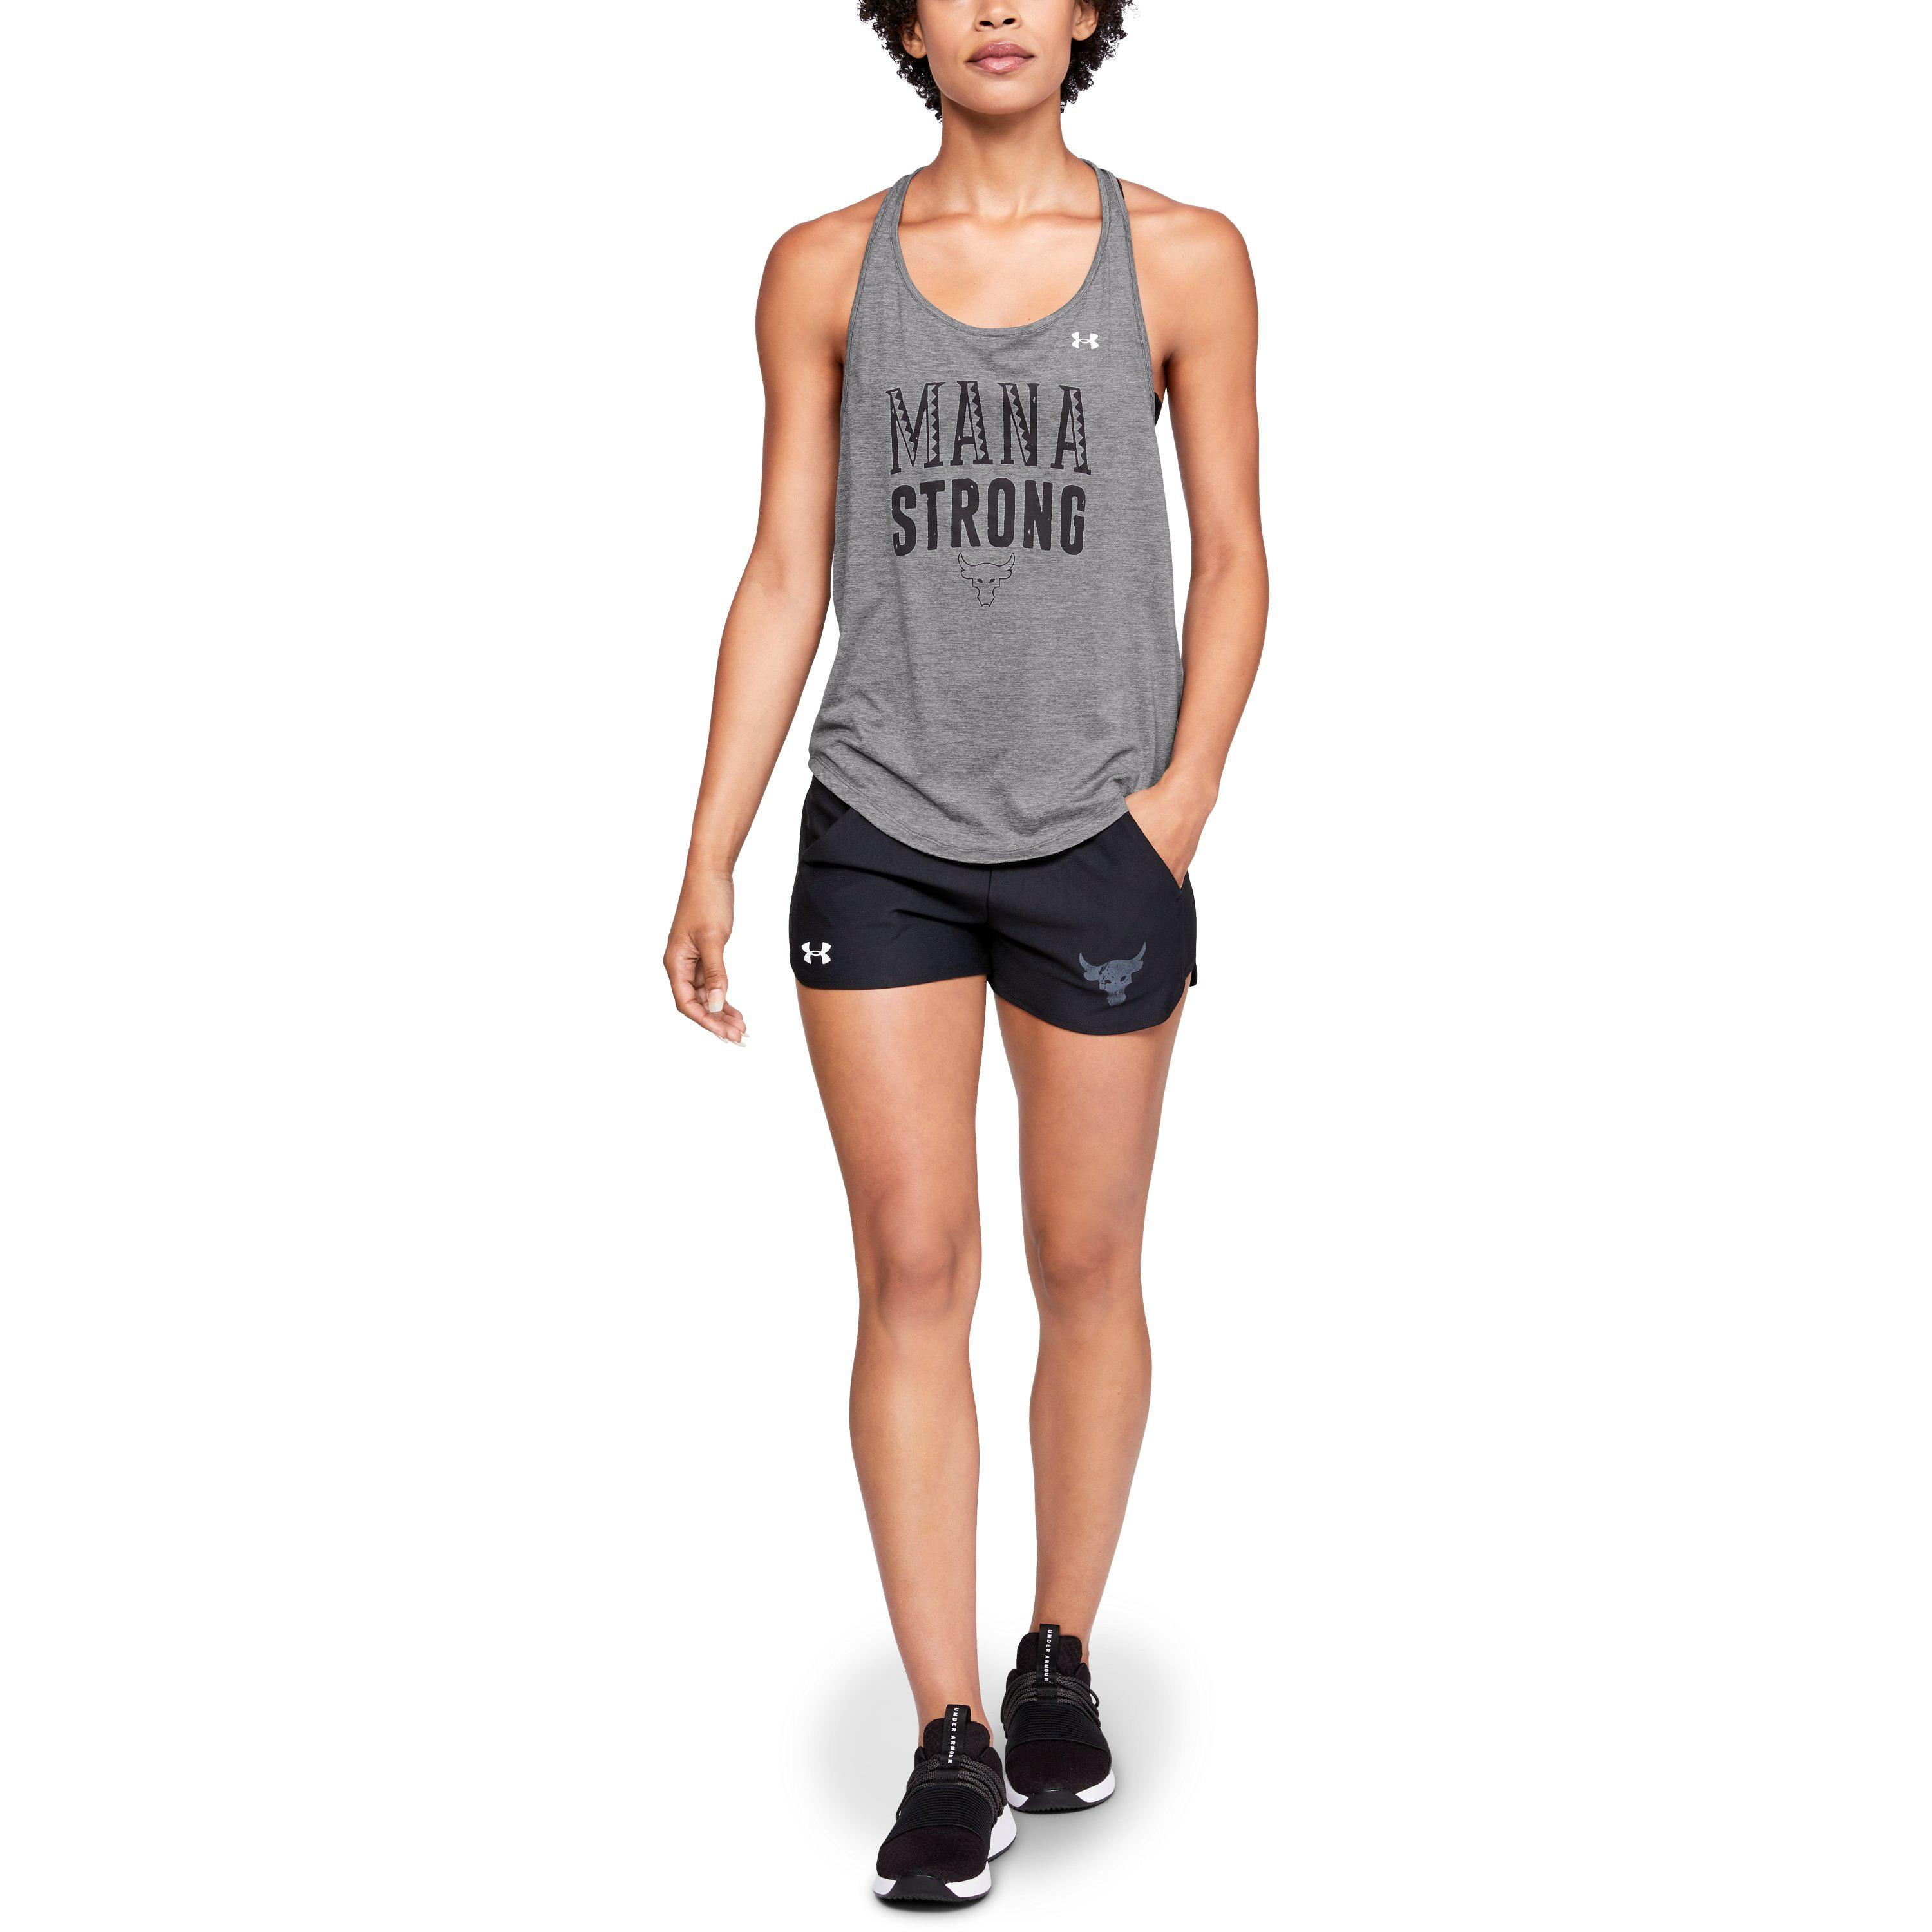 293aefa455a5e5 Lyst - Under Armour Women s Ua X Project Rock Mana Strong Tank in Gray